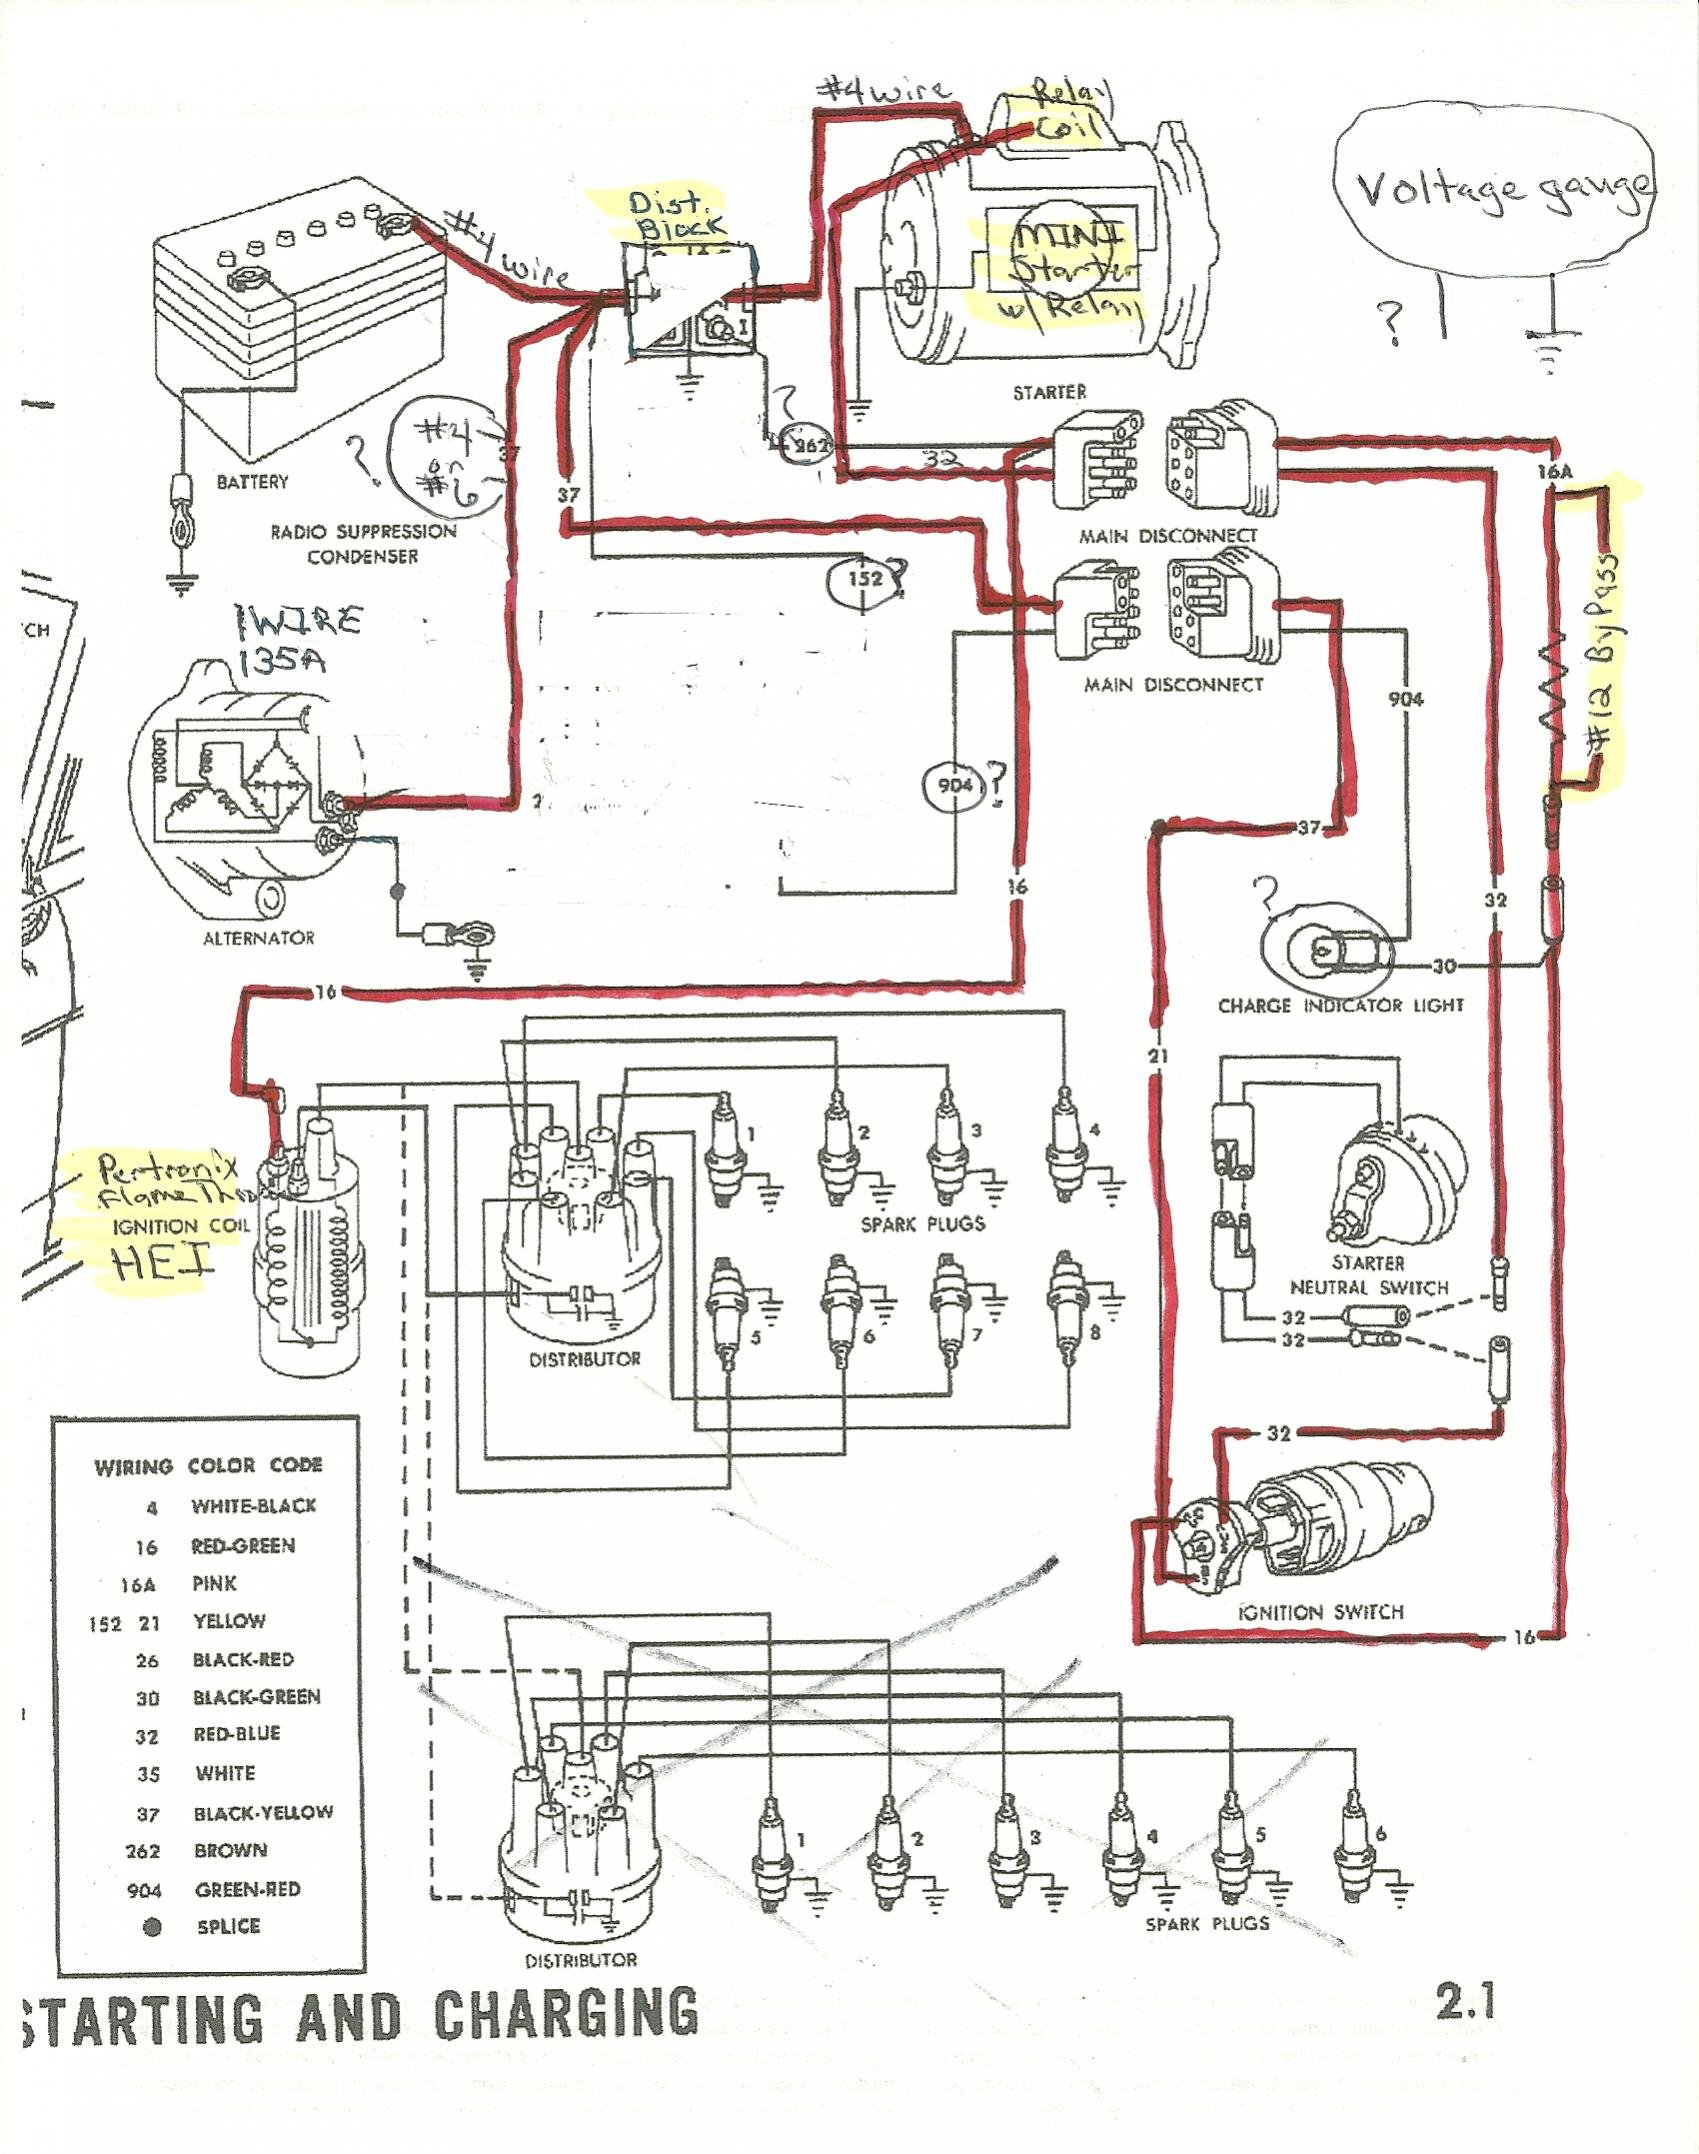 X 1996 Ford Ignition Switch Diagram | Online Wiring Diagram  Dakota Starter Wiring Diagram on dodge ram door switch diagram, dodge wiring harness diagram, 2002 dodge ram electrical diagram,